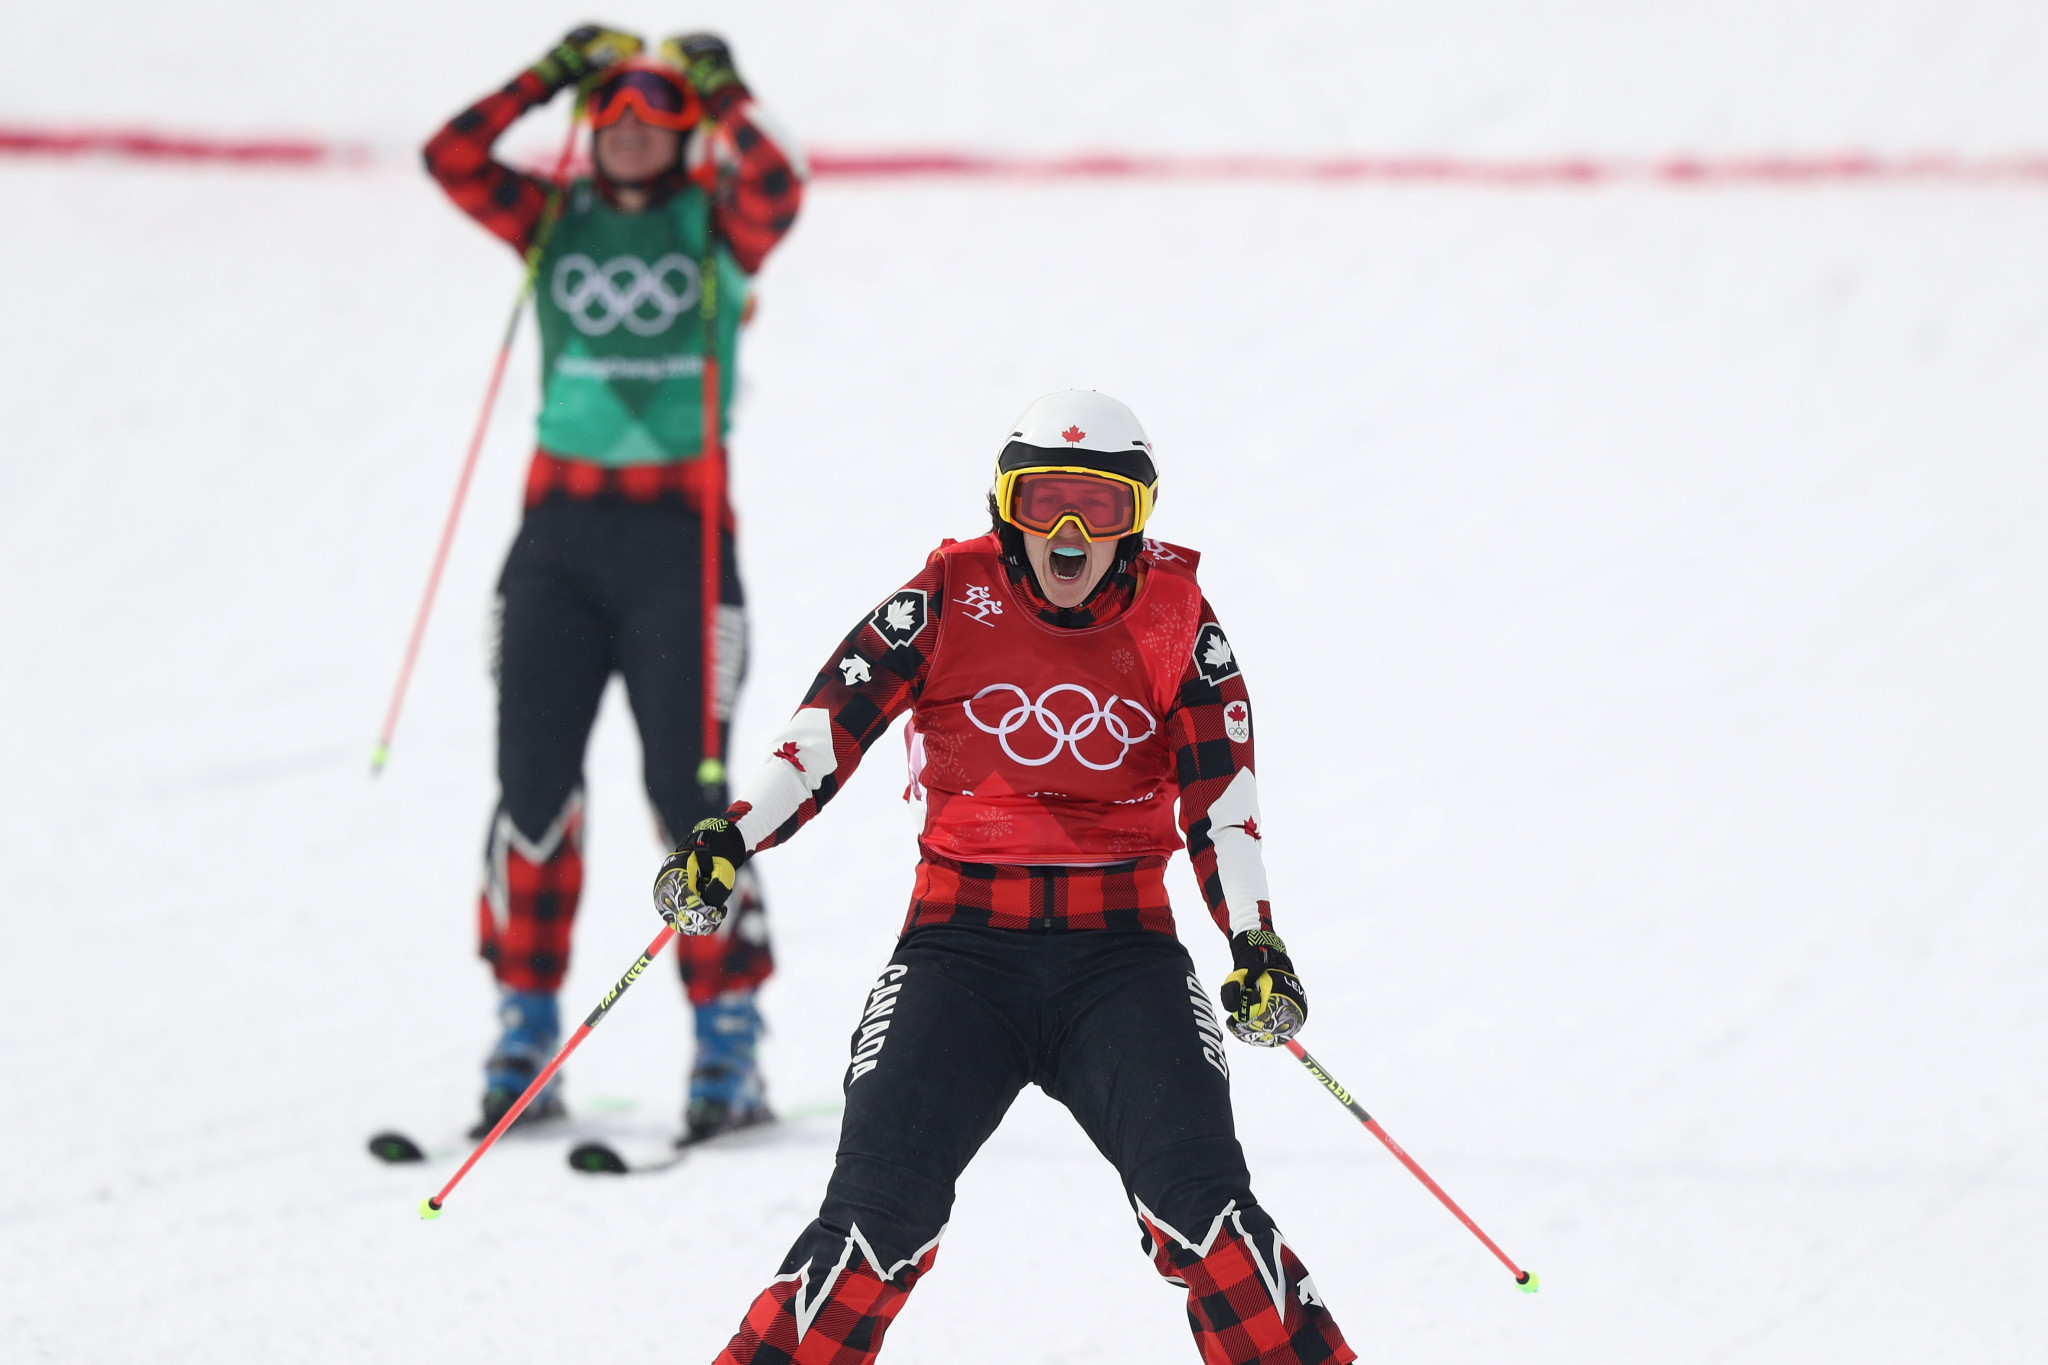 Canadian upgrades from Sochi 2014 silver to Pyeongchang 2018 gold in bad-tempered women's ski cross